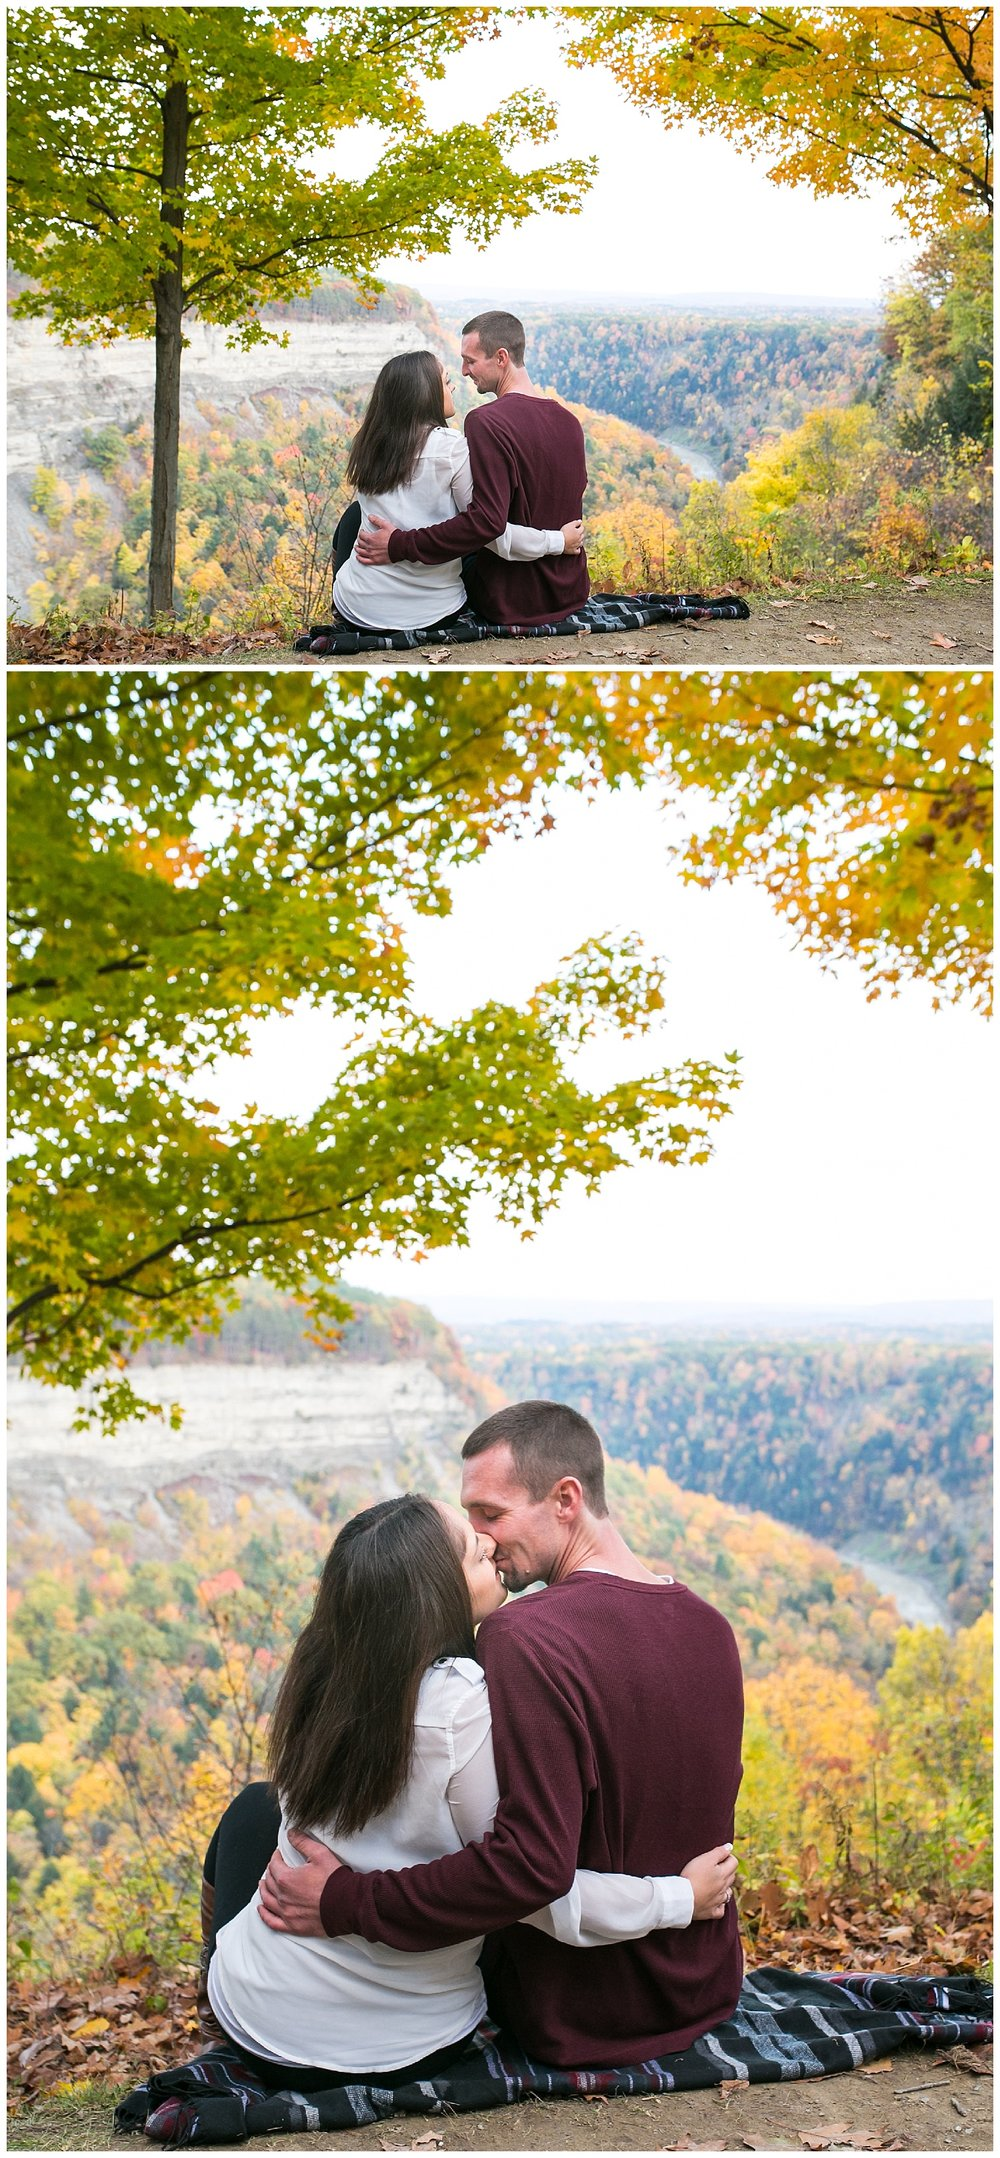 Gina and Tony - Engagement session - letchworth state park - lass and beau_0565.jpg